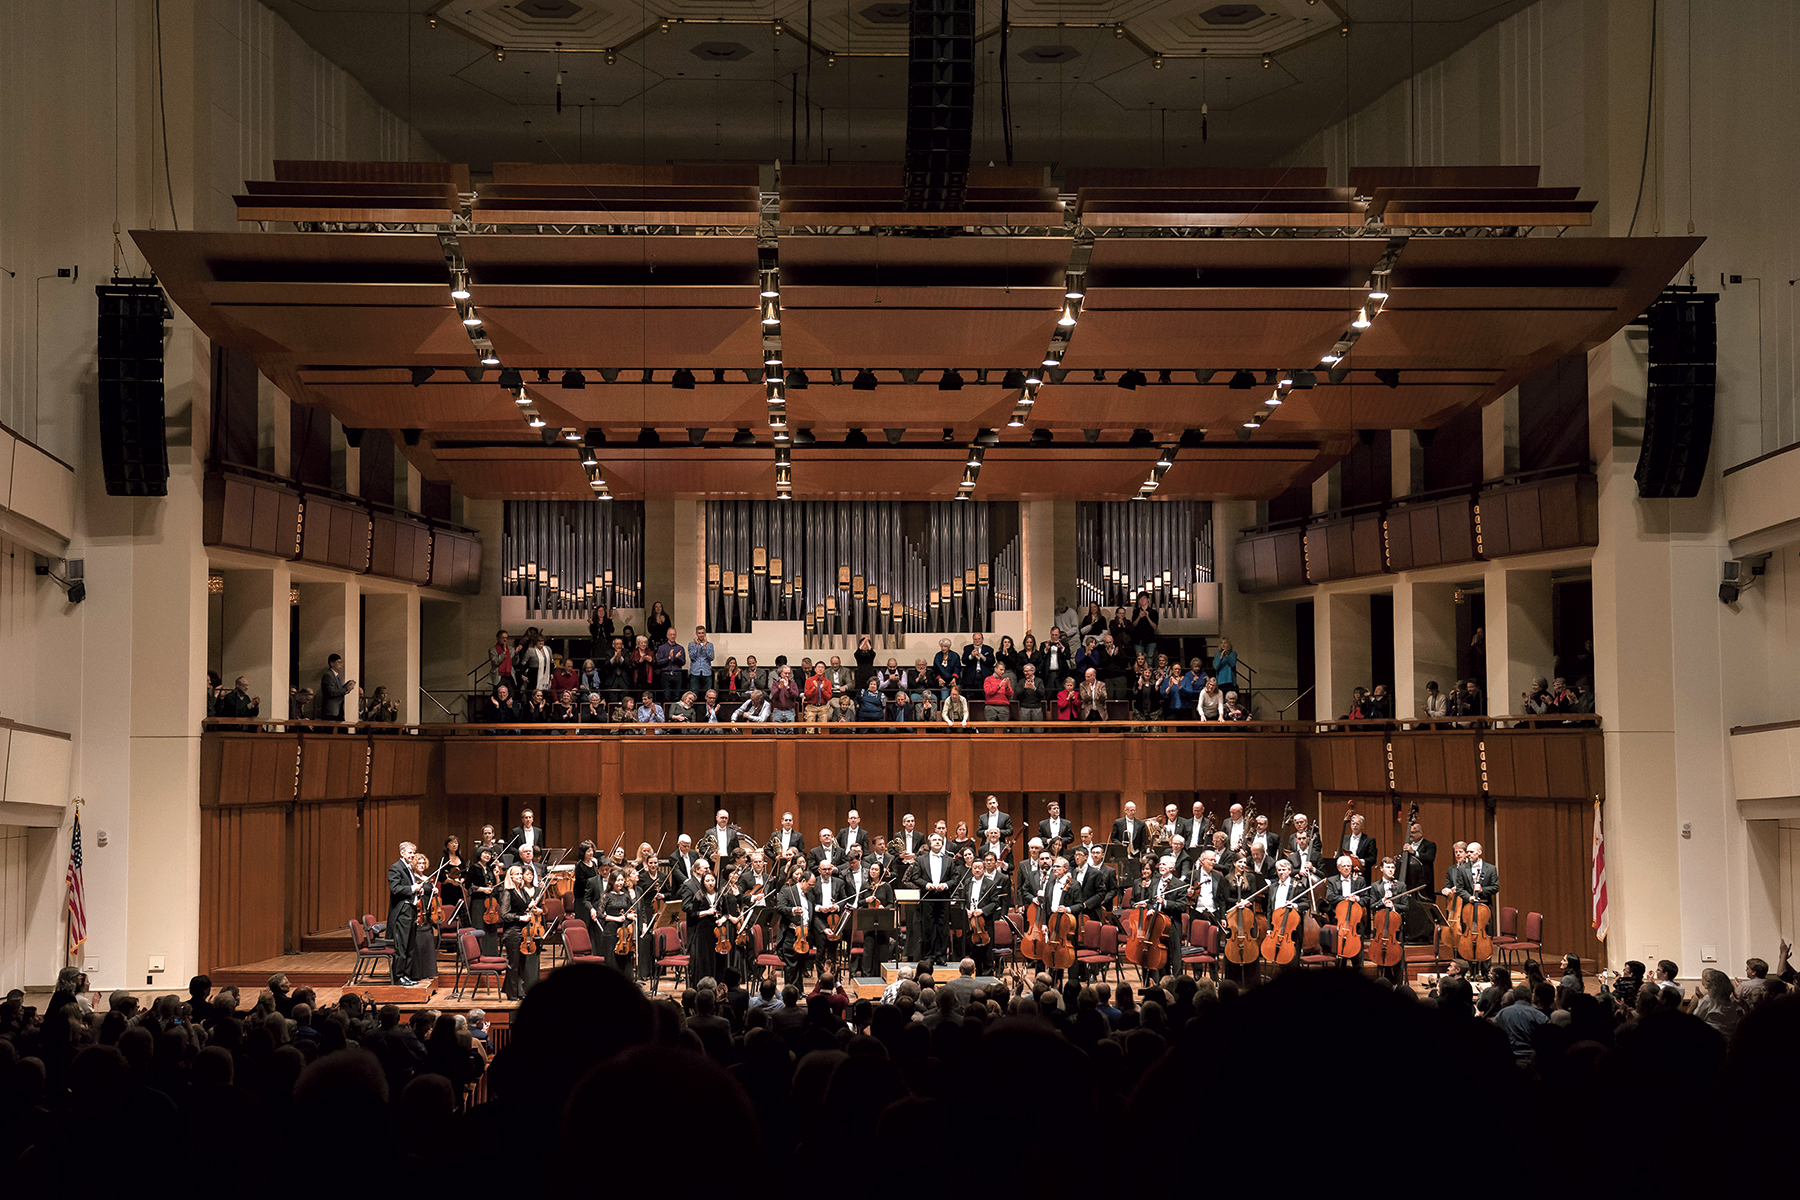 Washington Performing Arts recently brought the Chicago Symphony Orchestra to the Kennedy Center. Photograph by Todd Rosenberg.